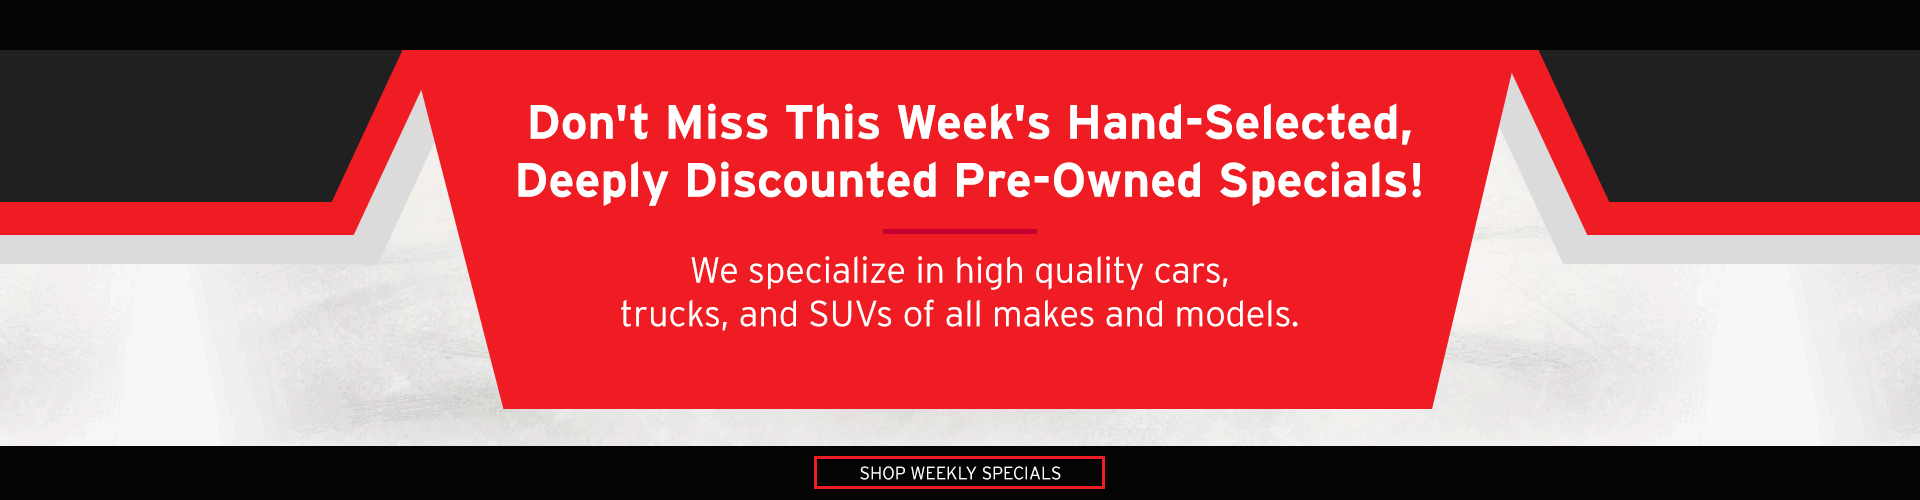 Weekly Pre-Owned Specials